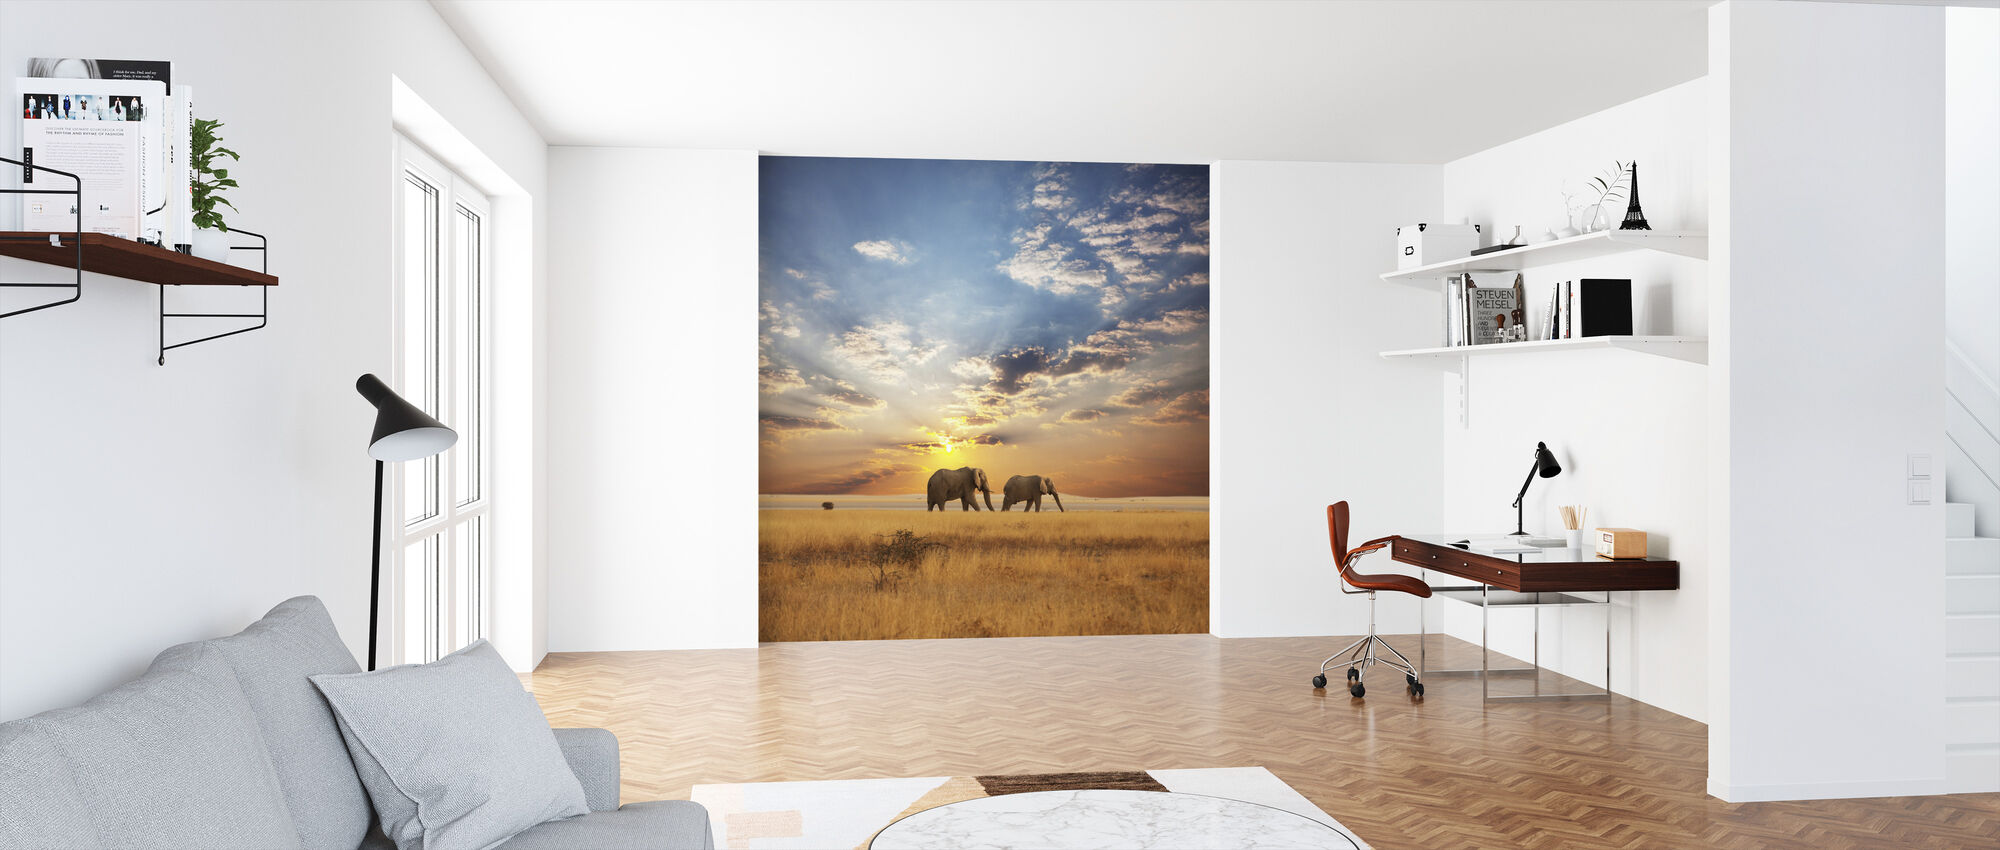 Savannah Sunset - Wallpaper - Office